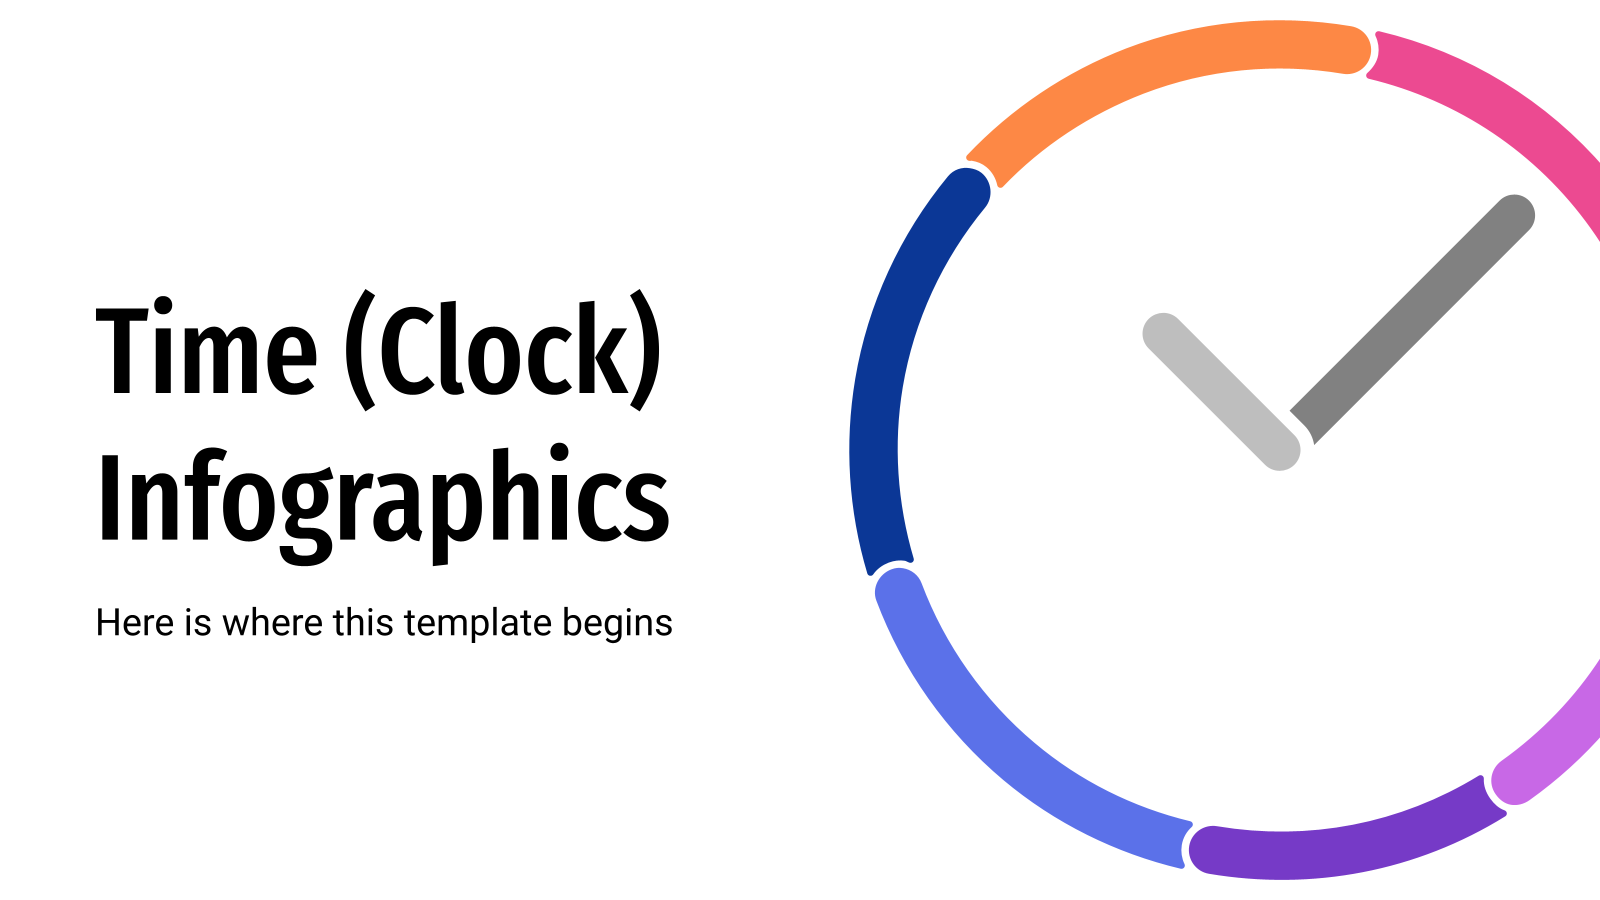 Time (Clock) Infographics presentation template